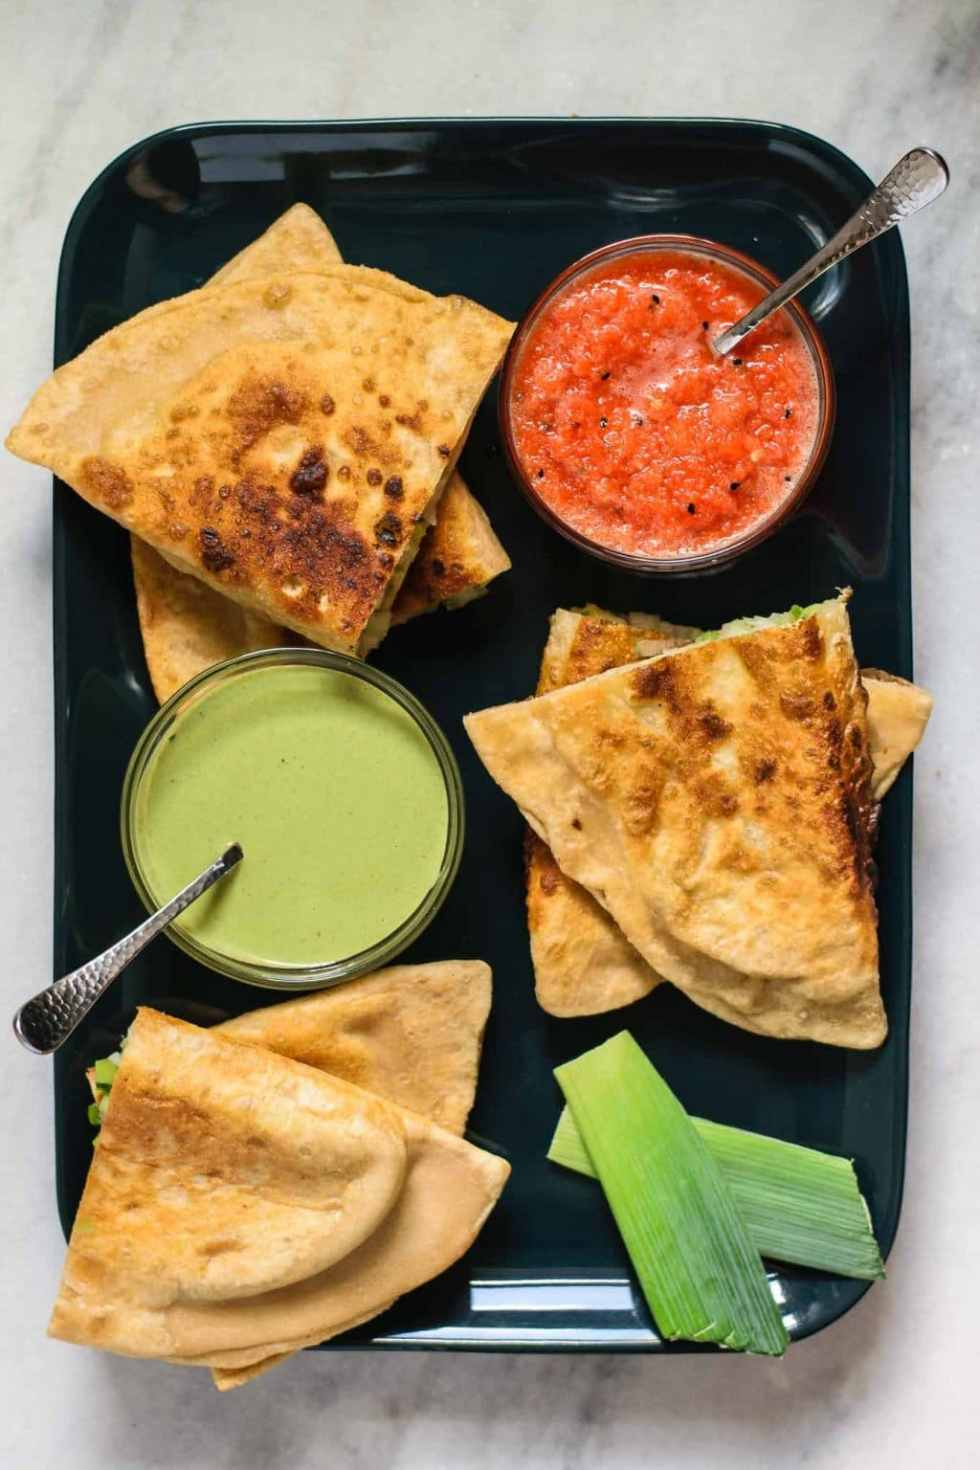 leek bolani served with coriander chutney and red pepper chutney